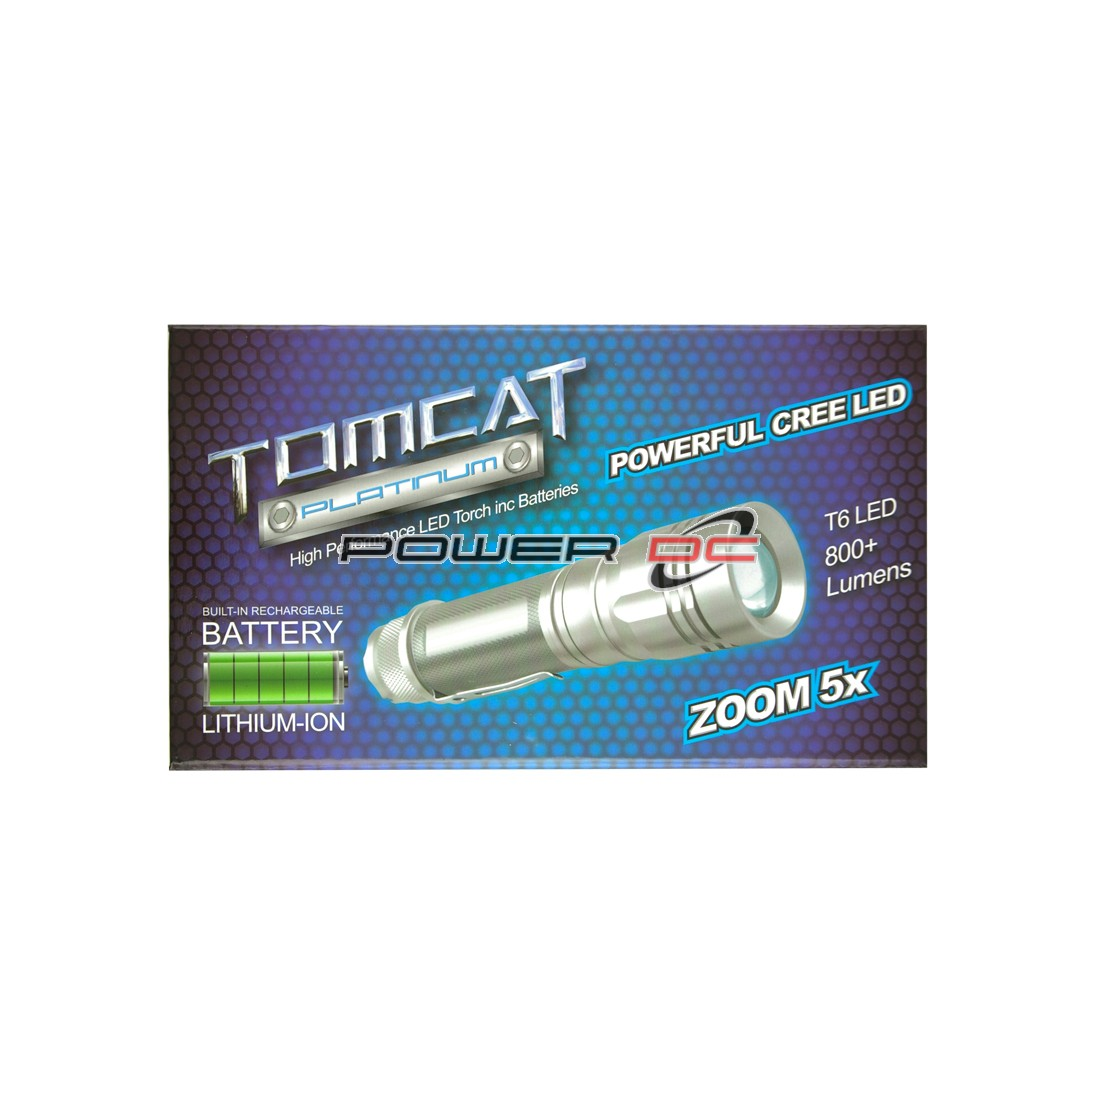 TOMCAT PLATINUM RECHARGEABLE CREE TORCH INC. 18650 BATTERY